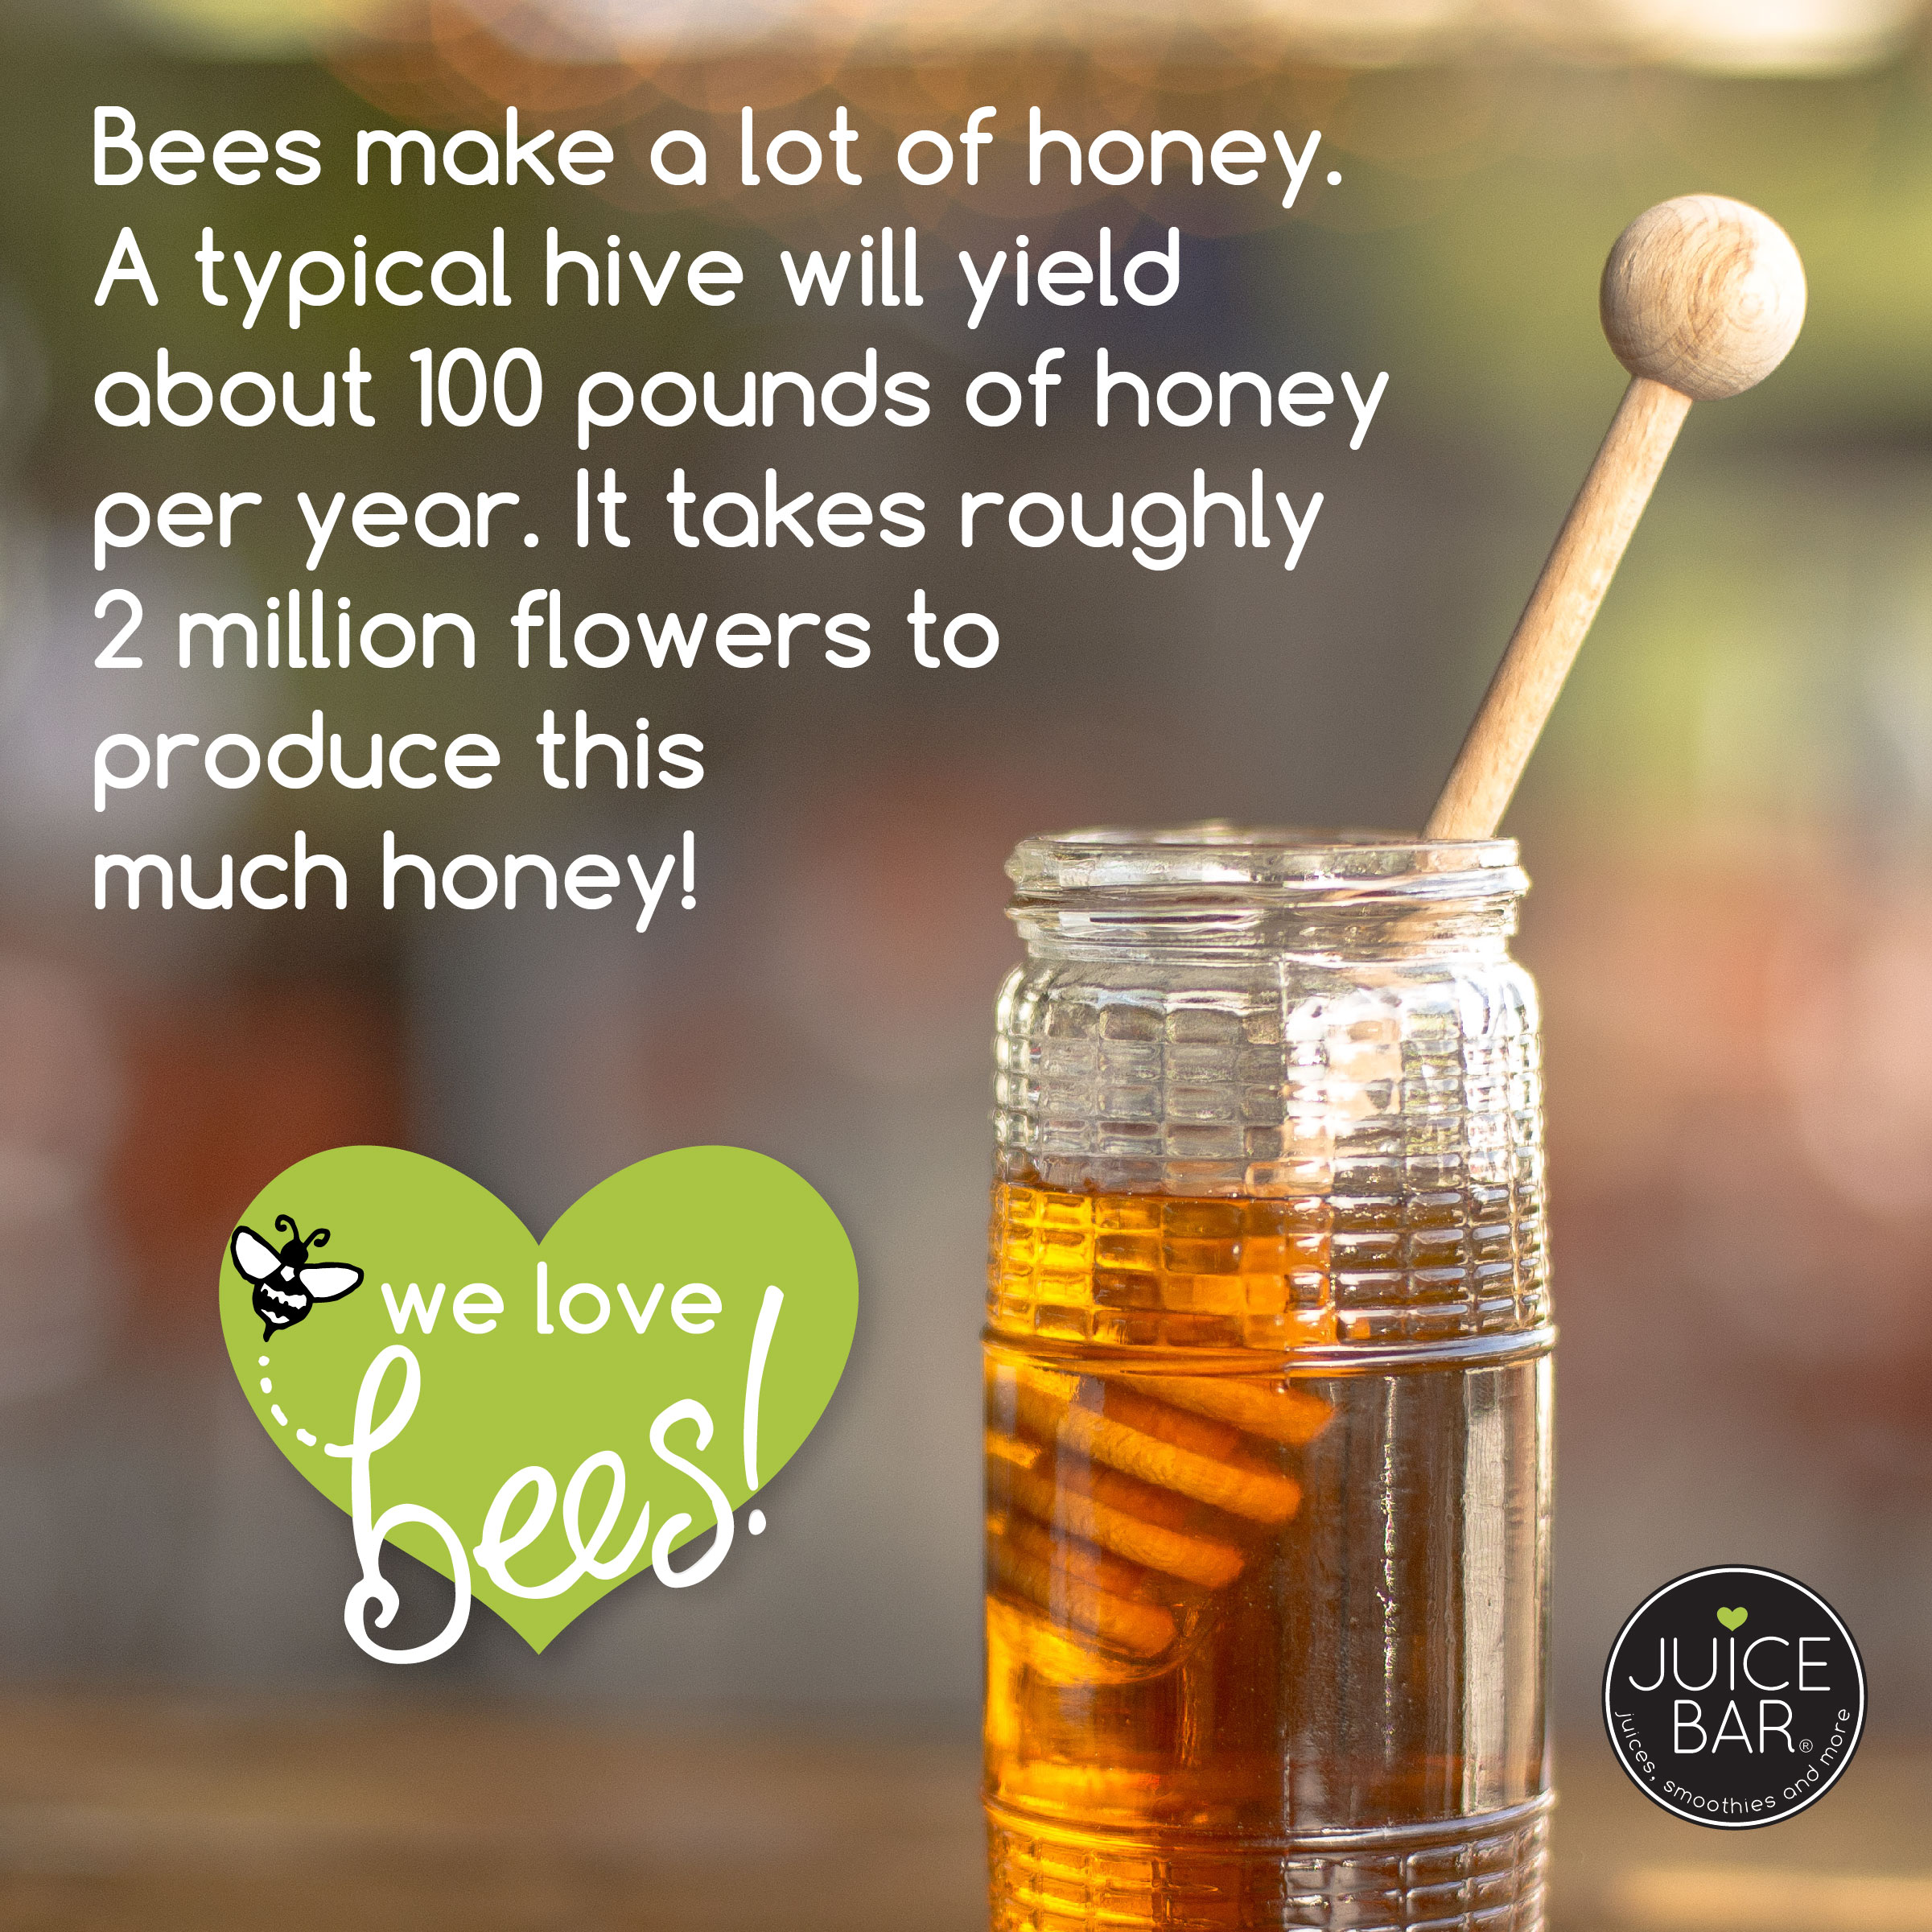 fun facts_WE LOVE BEES-05.jpg